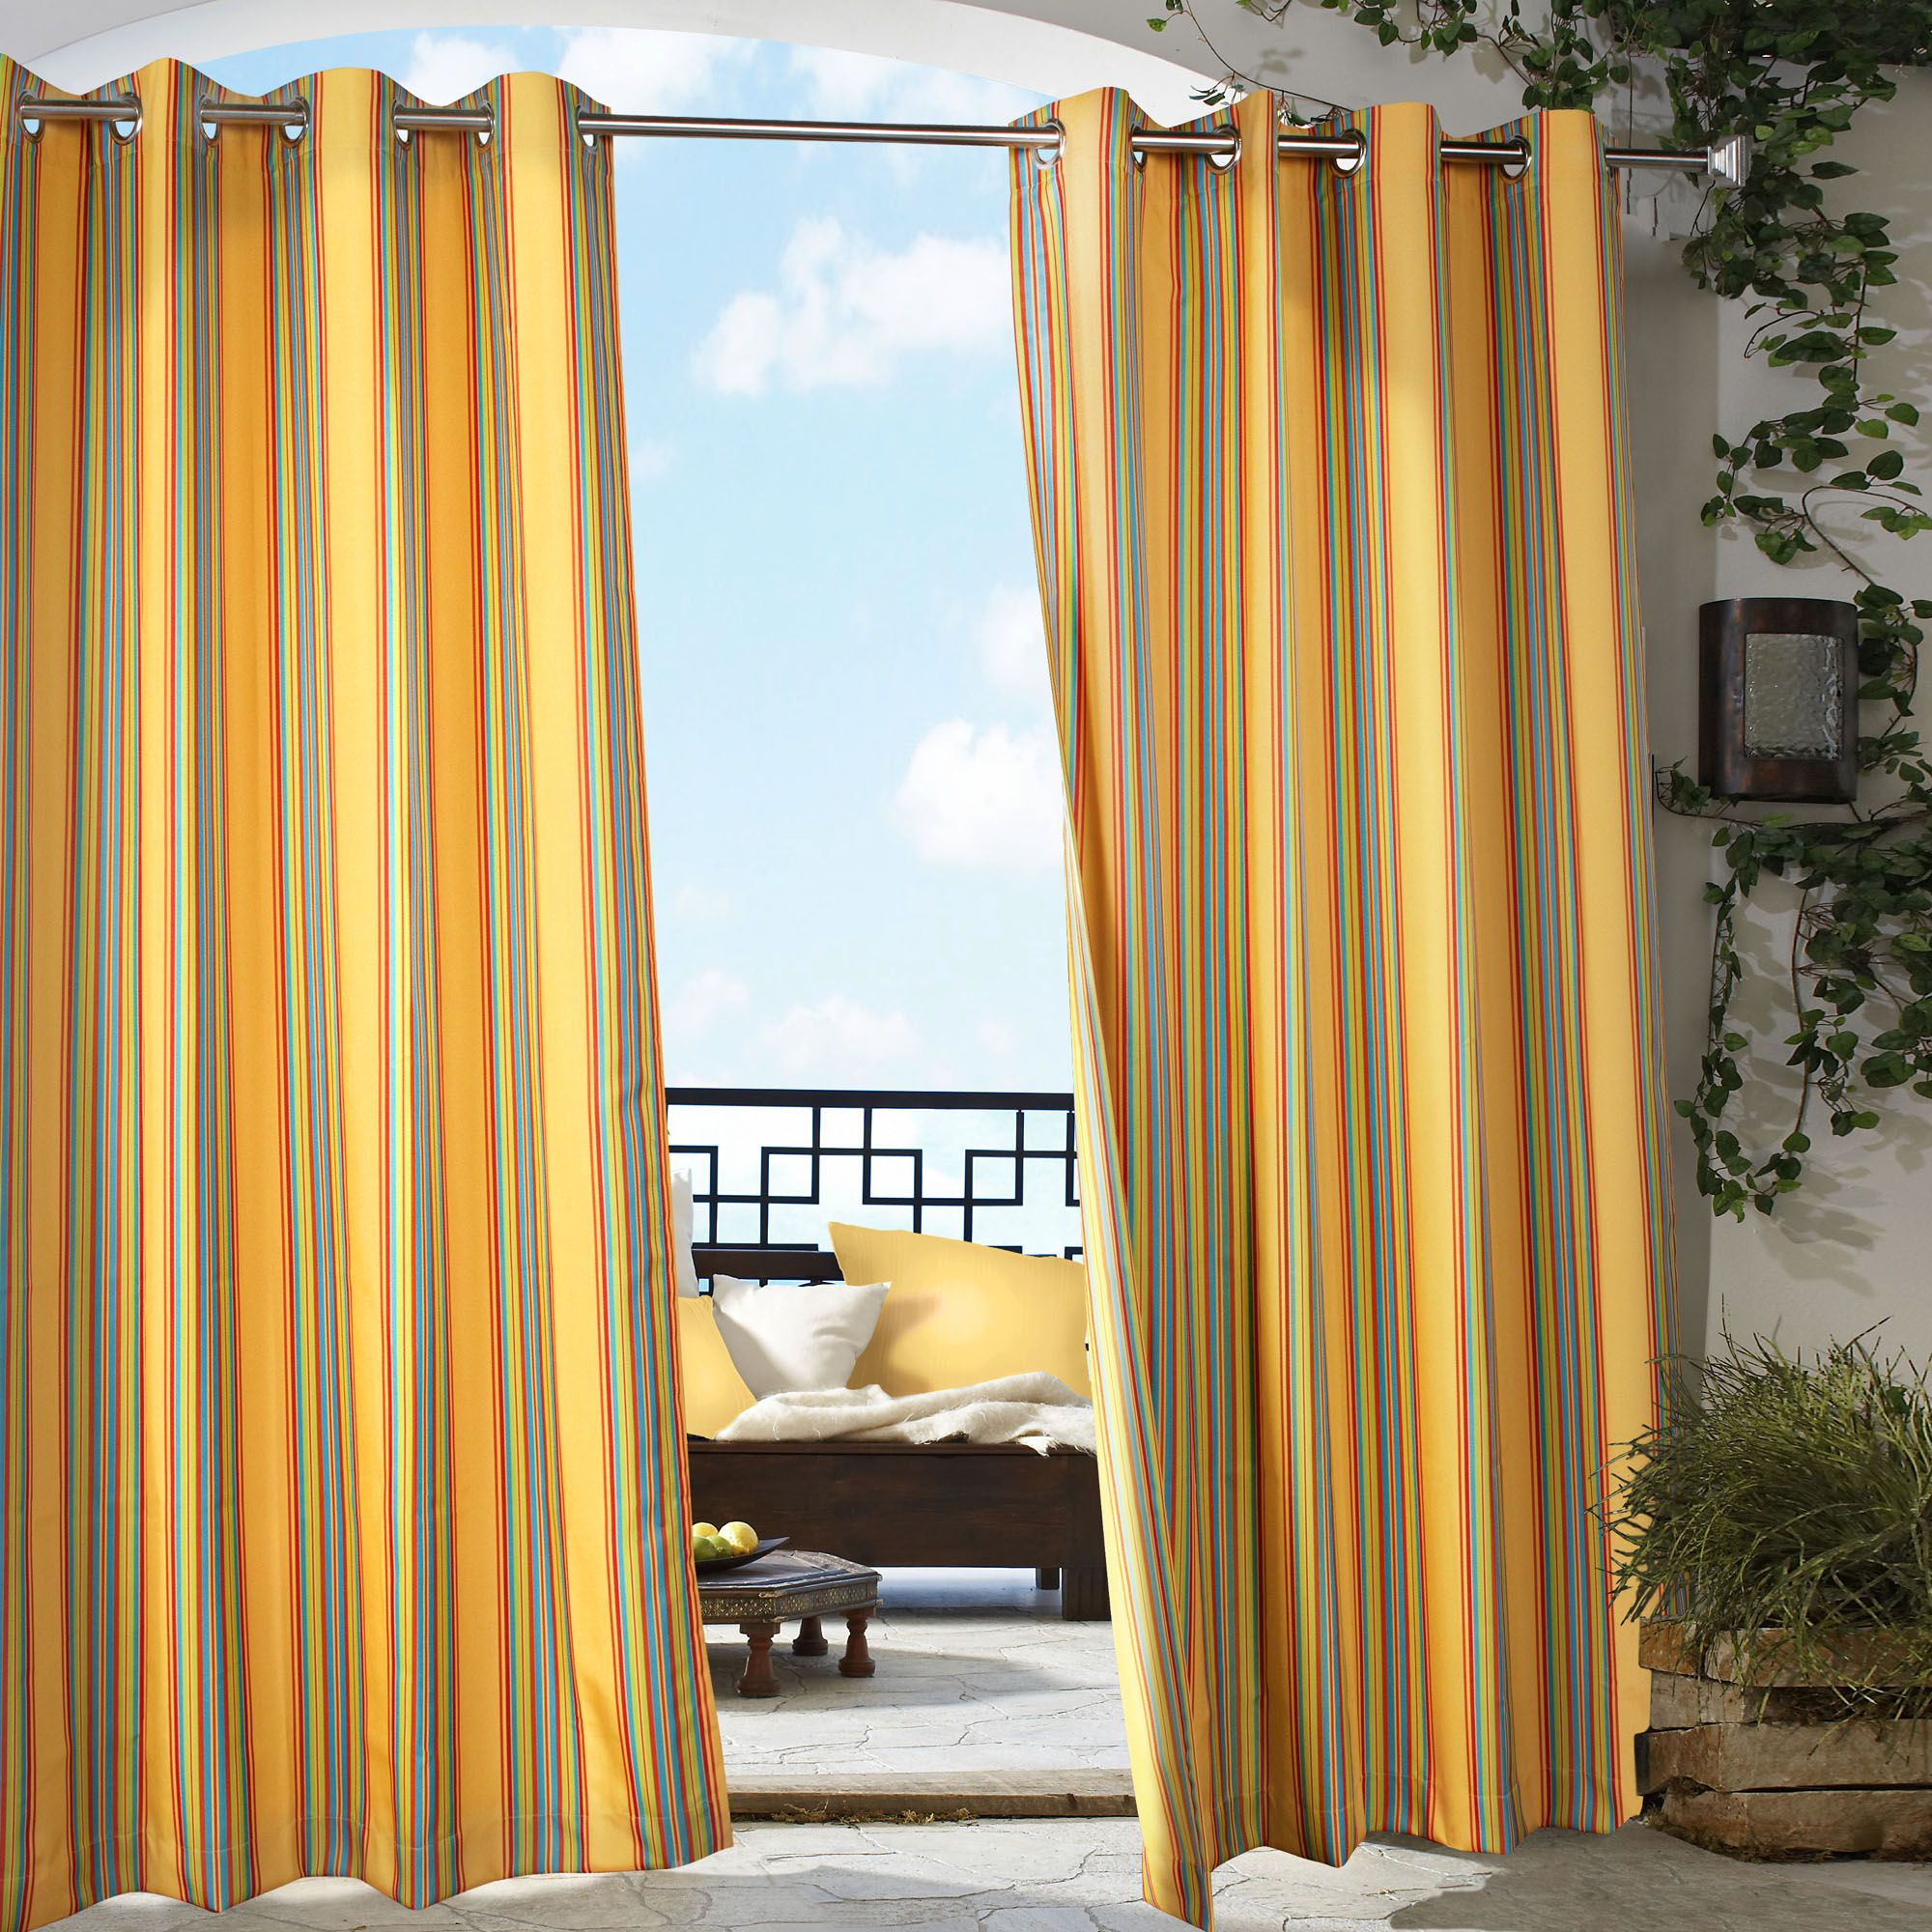 Outdoor curtains - Simple Indoor Outdoor Curtain In Yellow Striped Accent Plus Greenery And Decorated With Comfy Wooden Chair